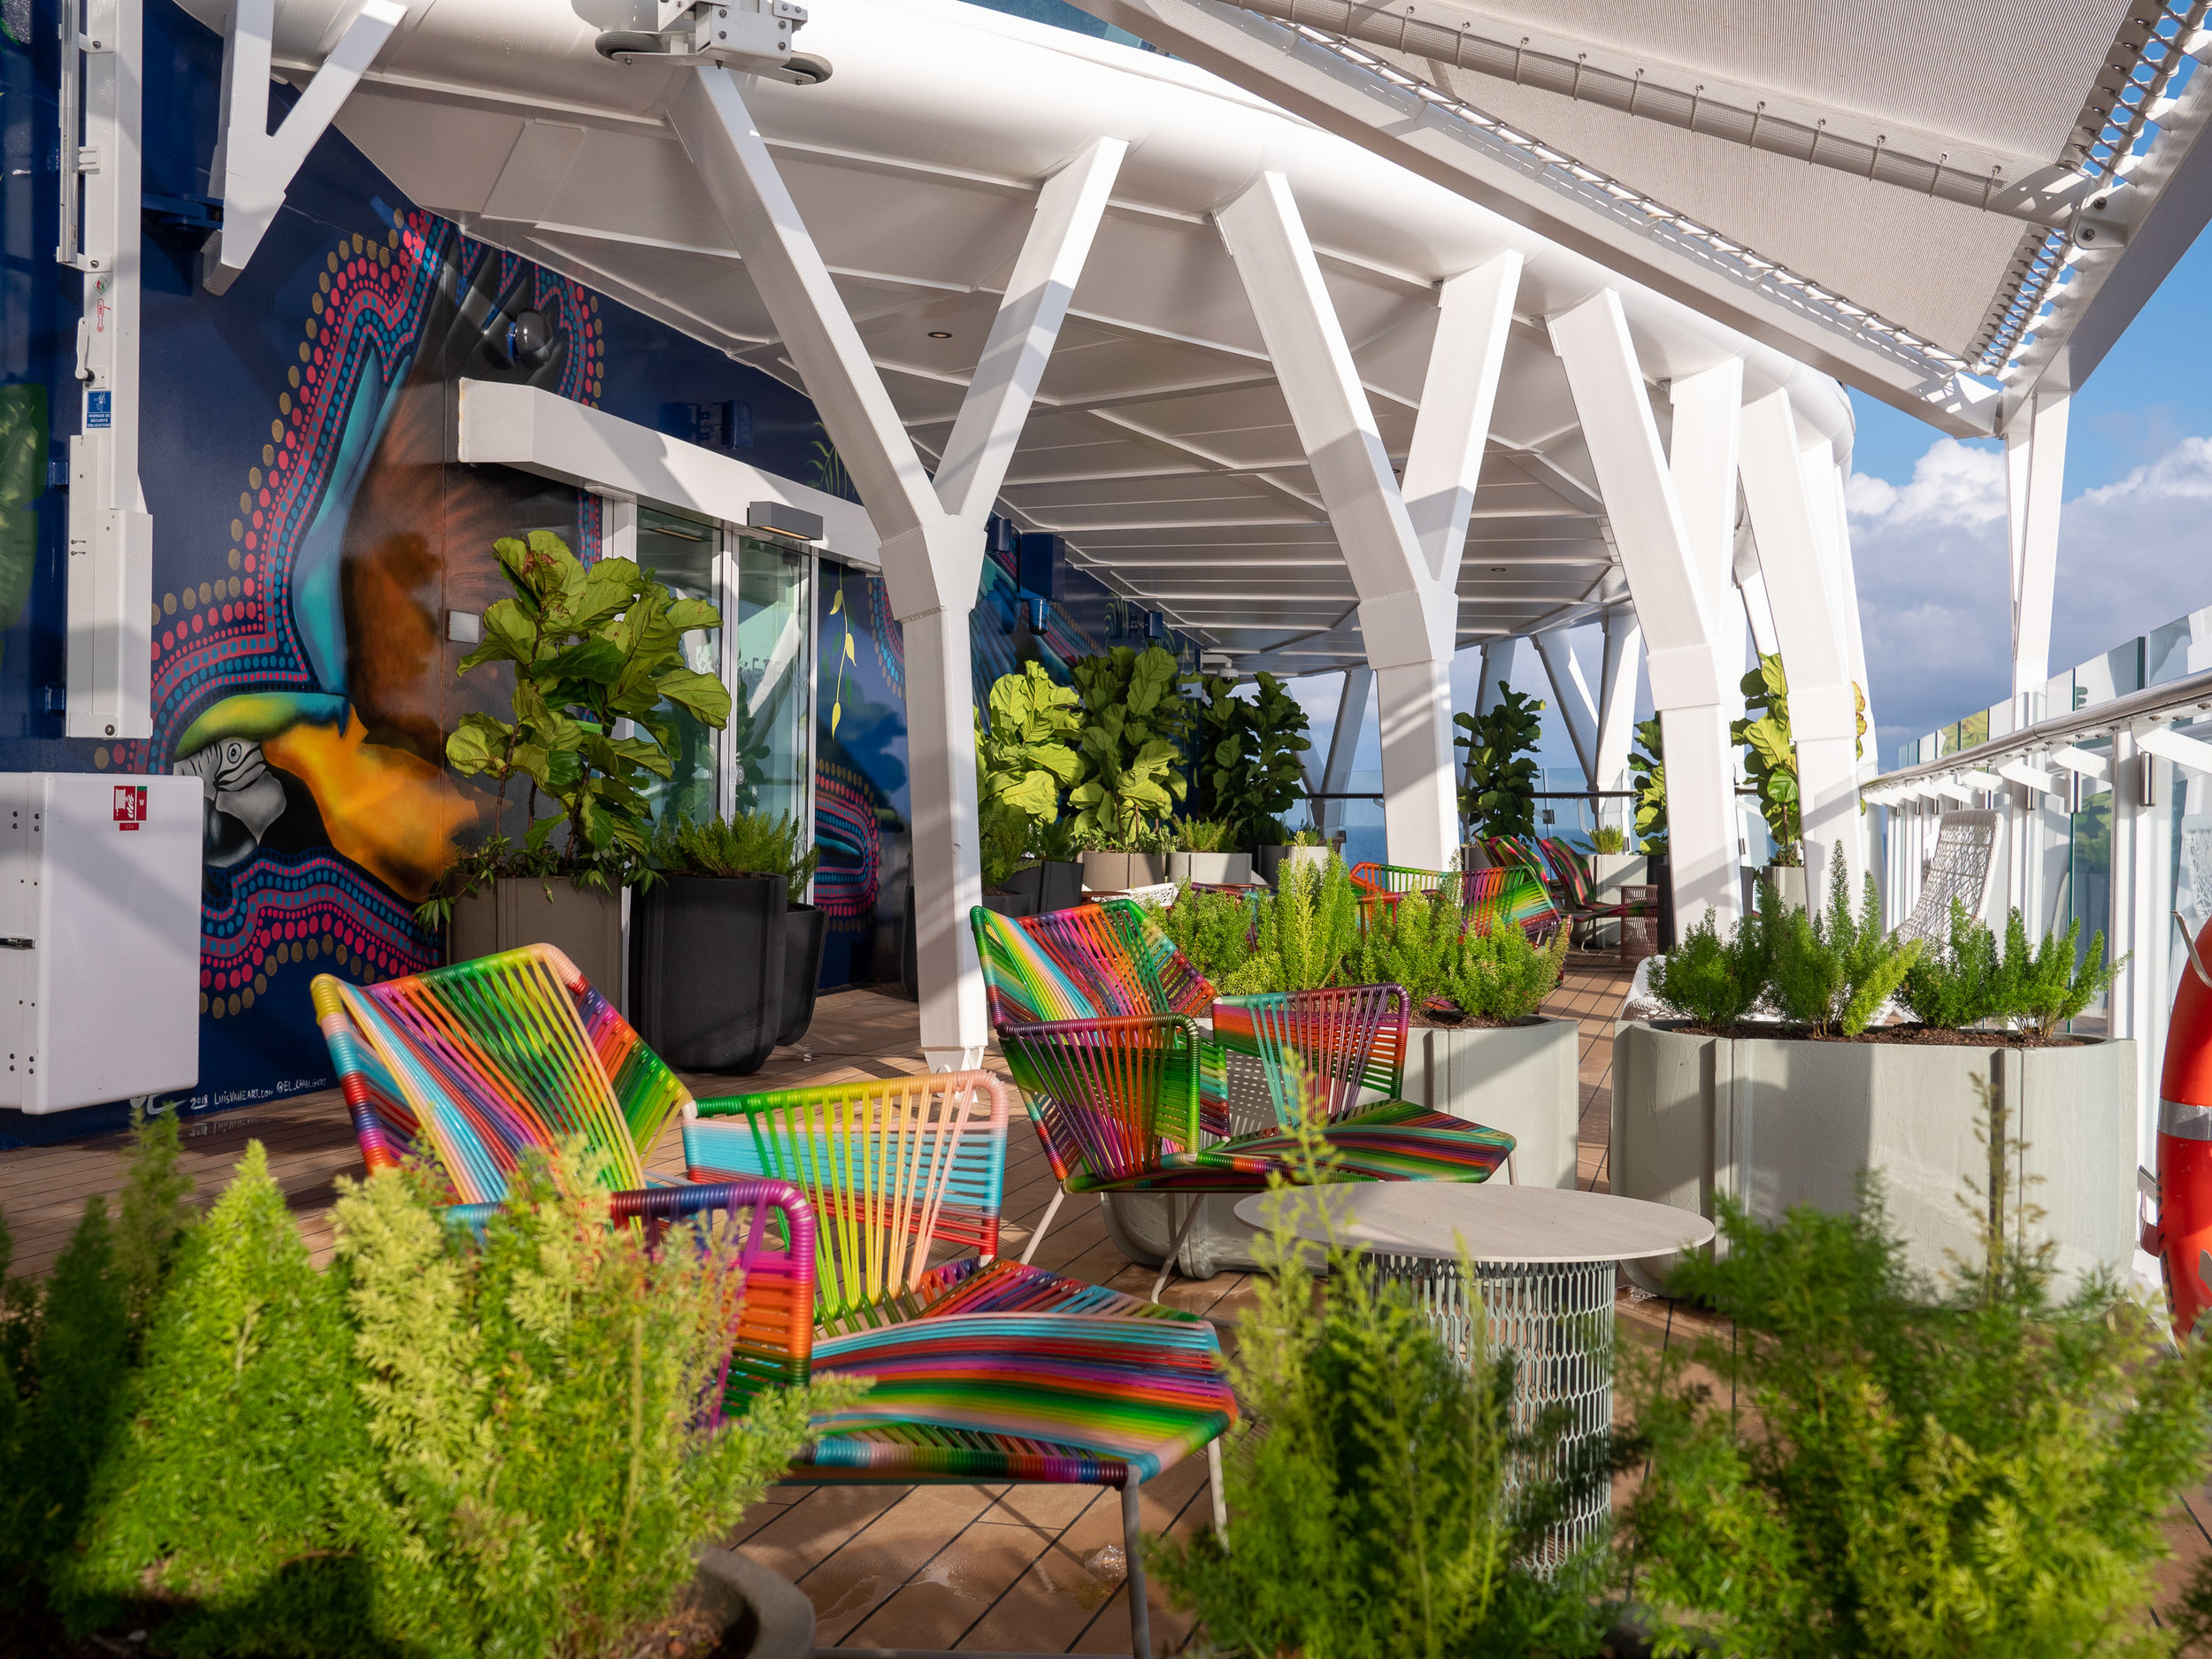 Each level of the Celebrity Edge cruise ship houses a distinctly-designed lookouts and balconies.